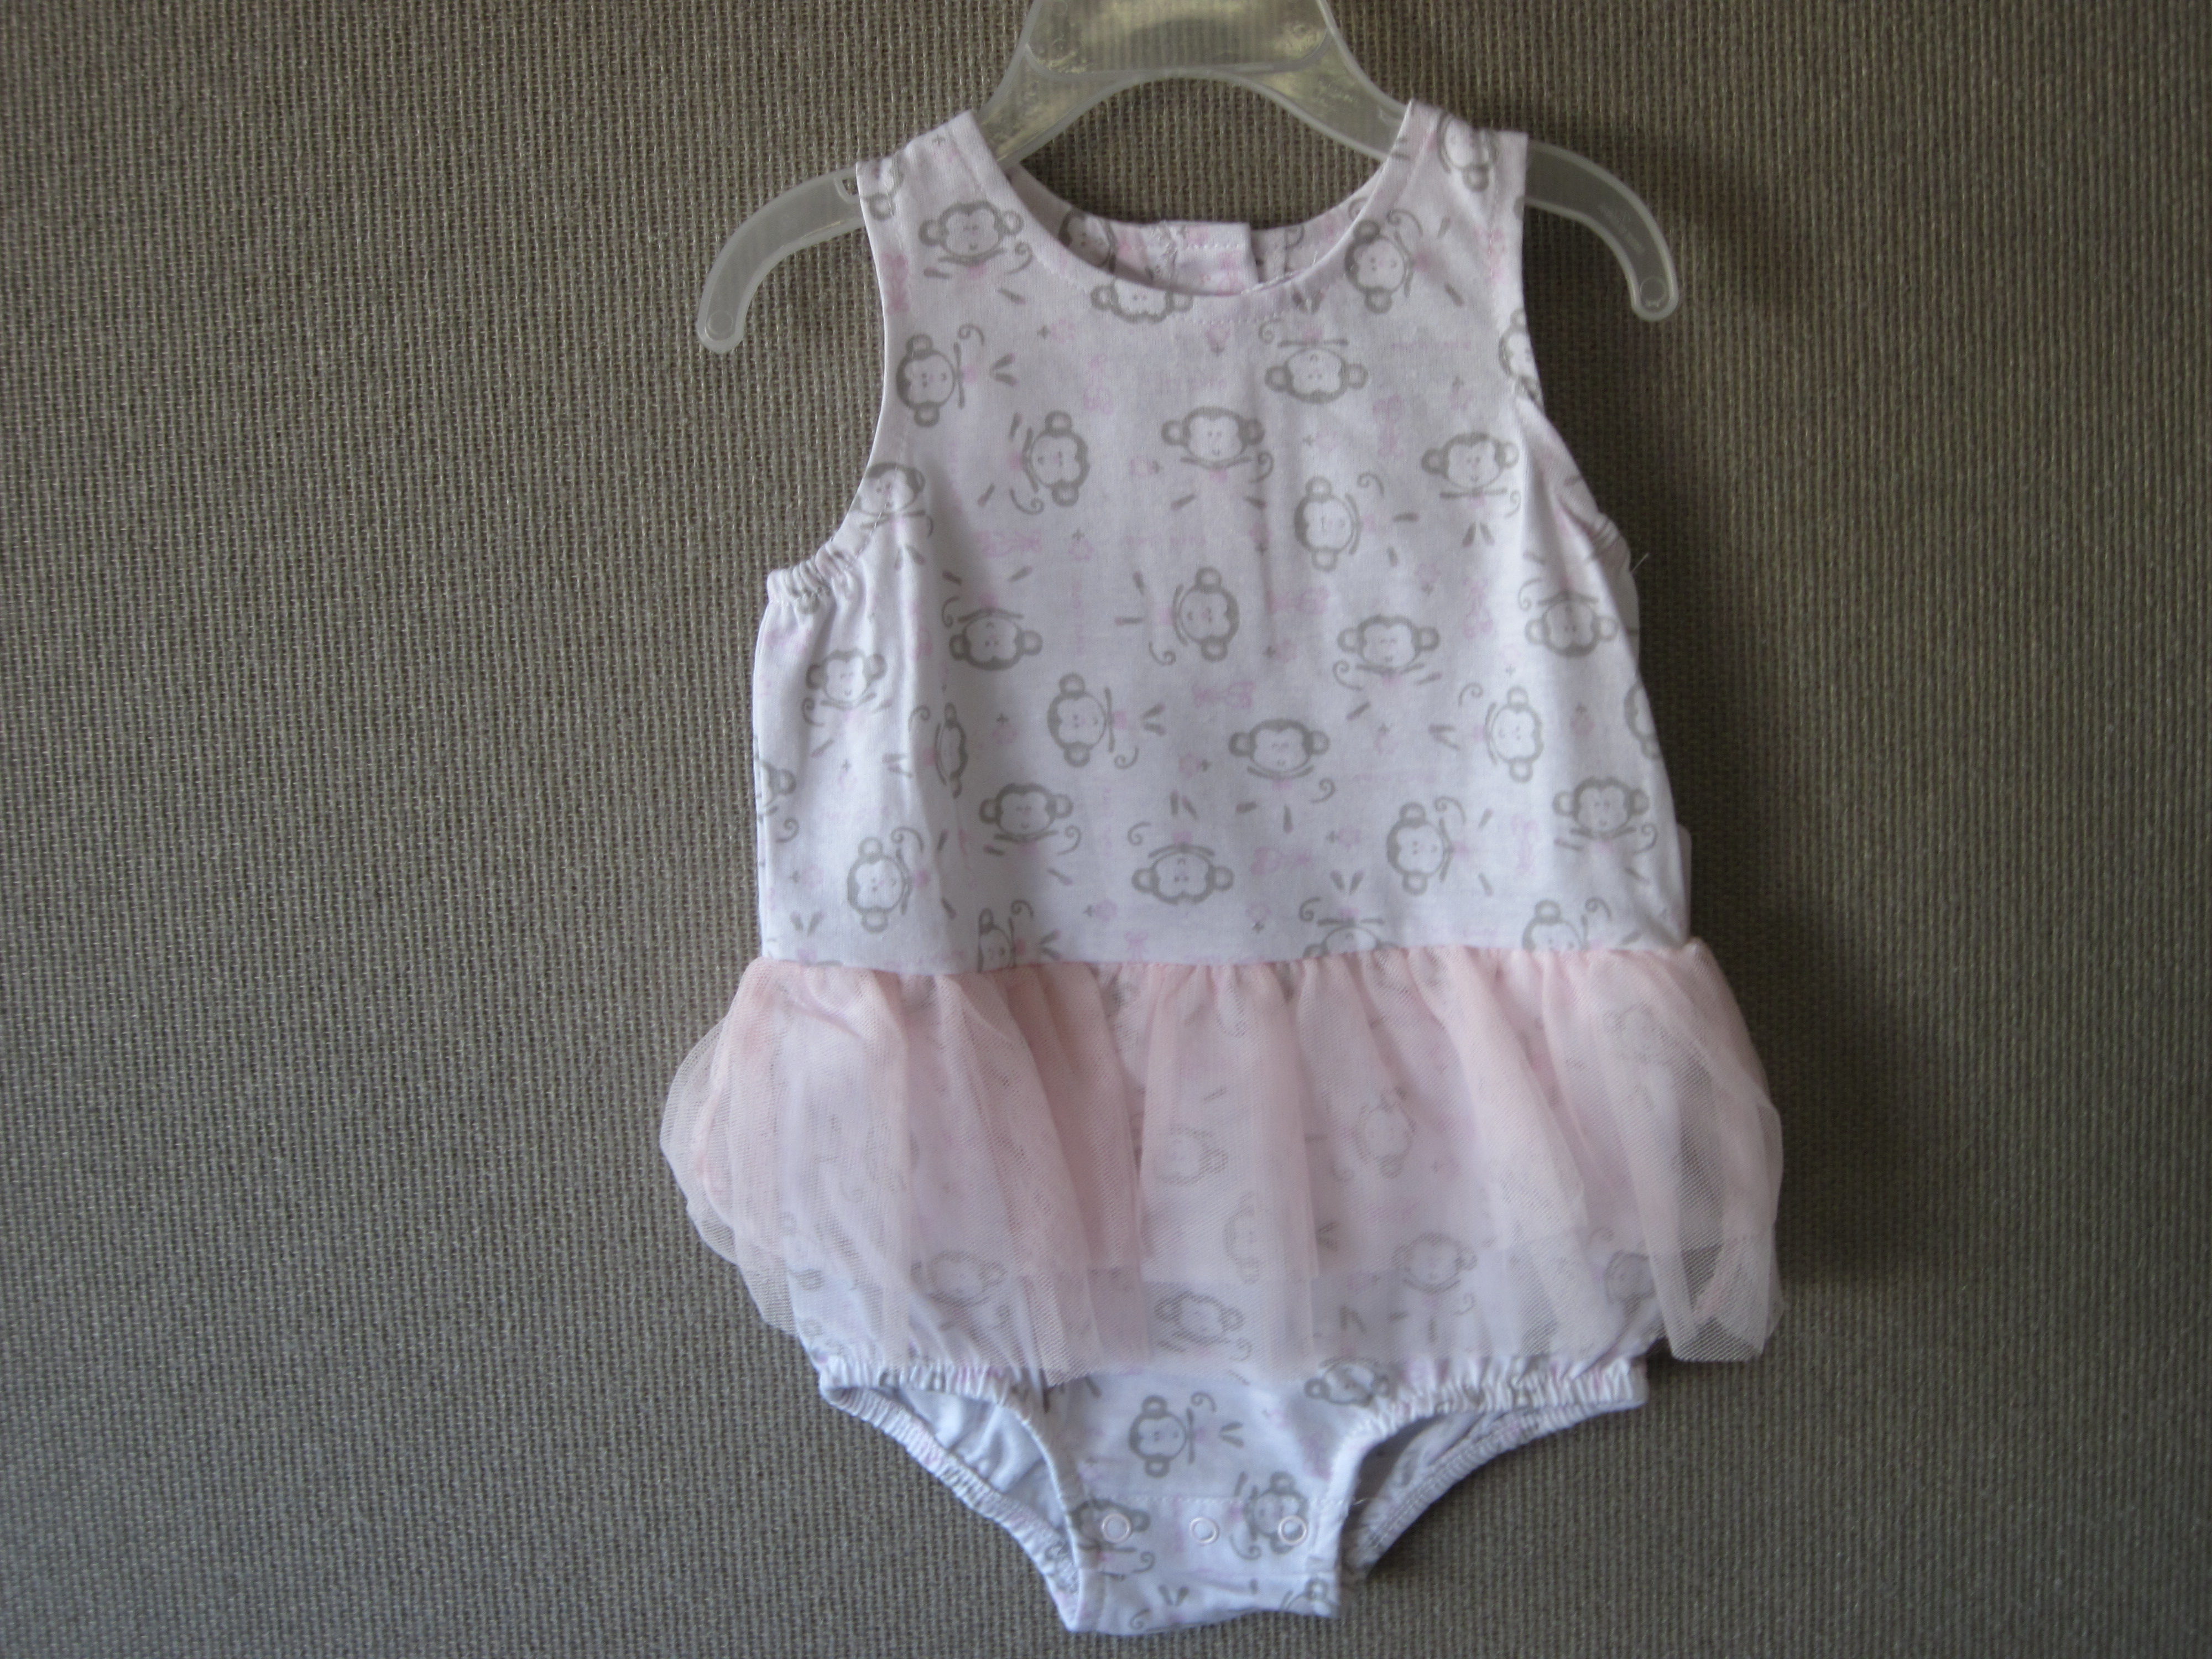 Monkey Onsie Sz 6-9 Mos (Pink & Gray with Monkeys)